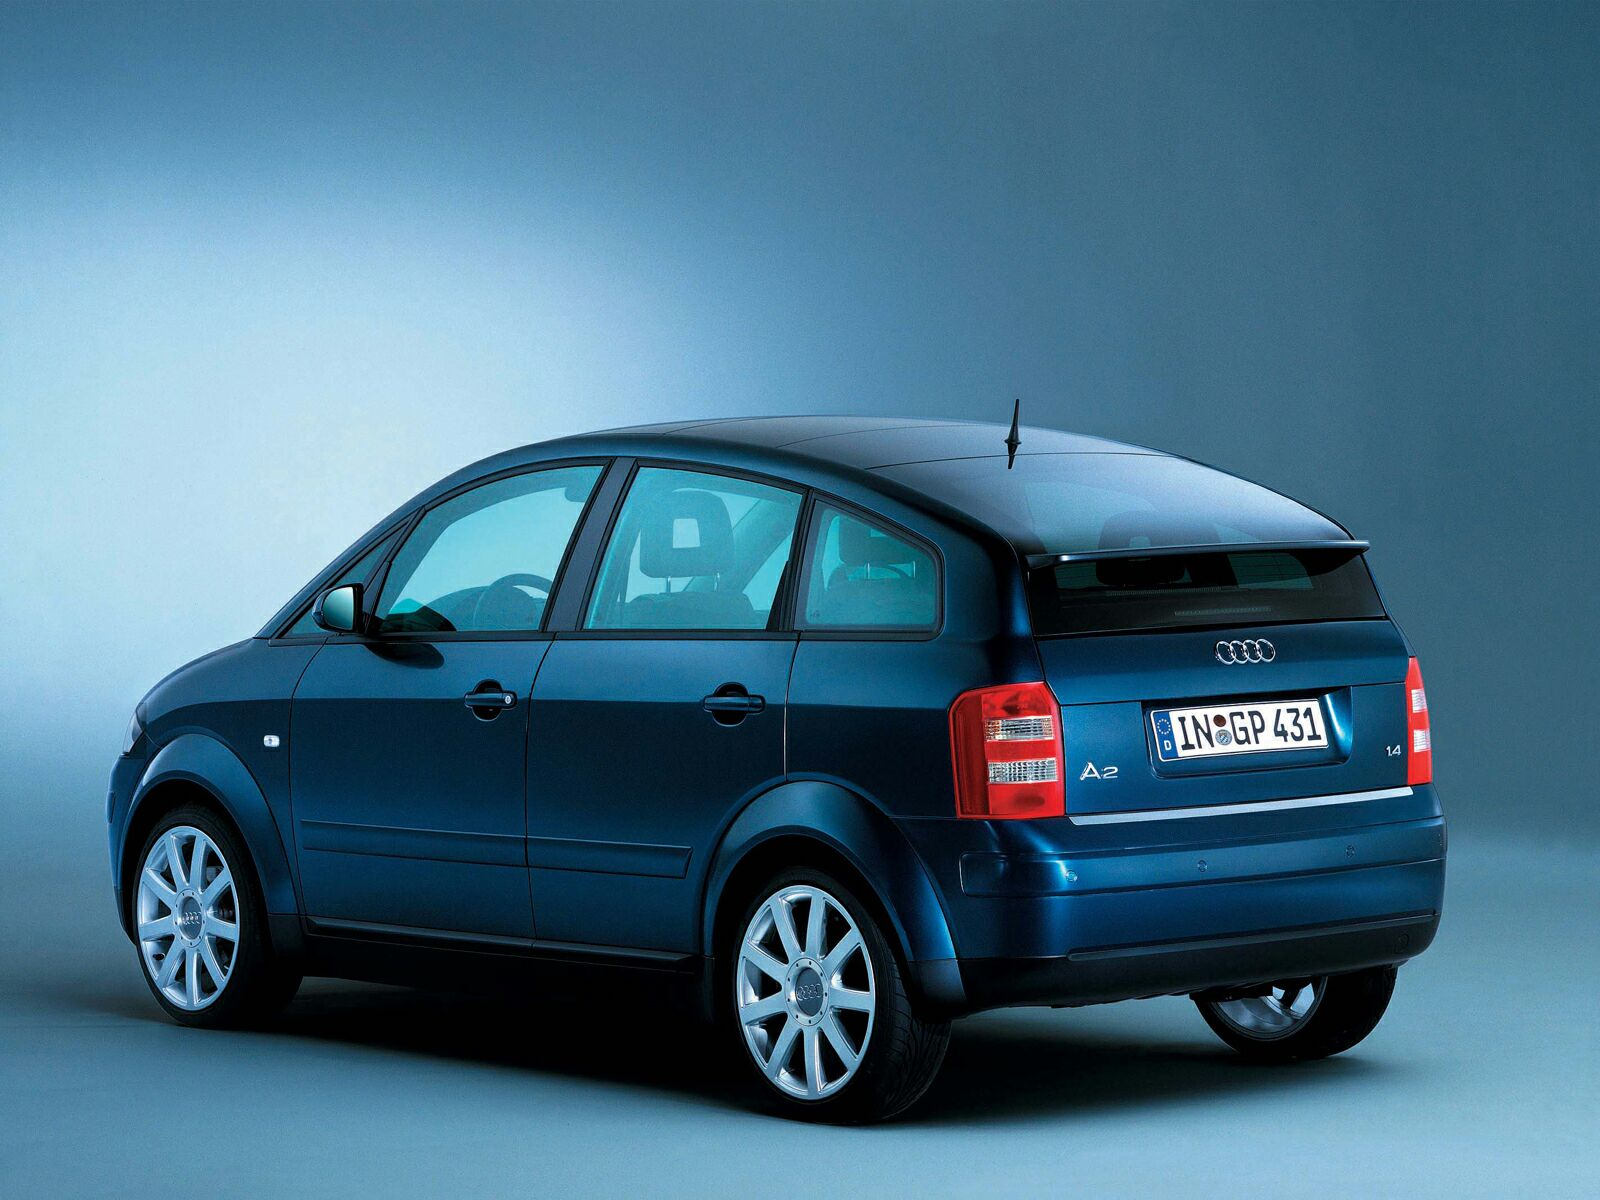 AUDI A2 - Review and photos